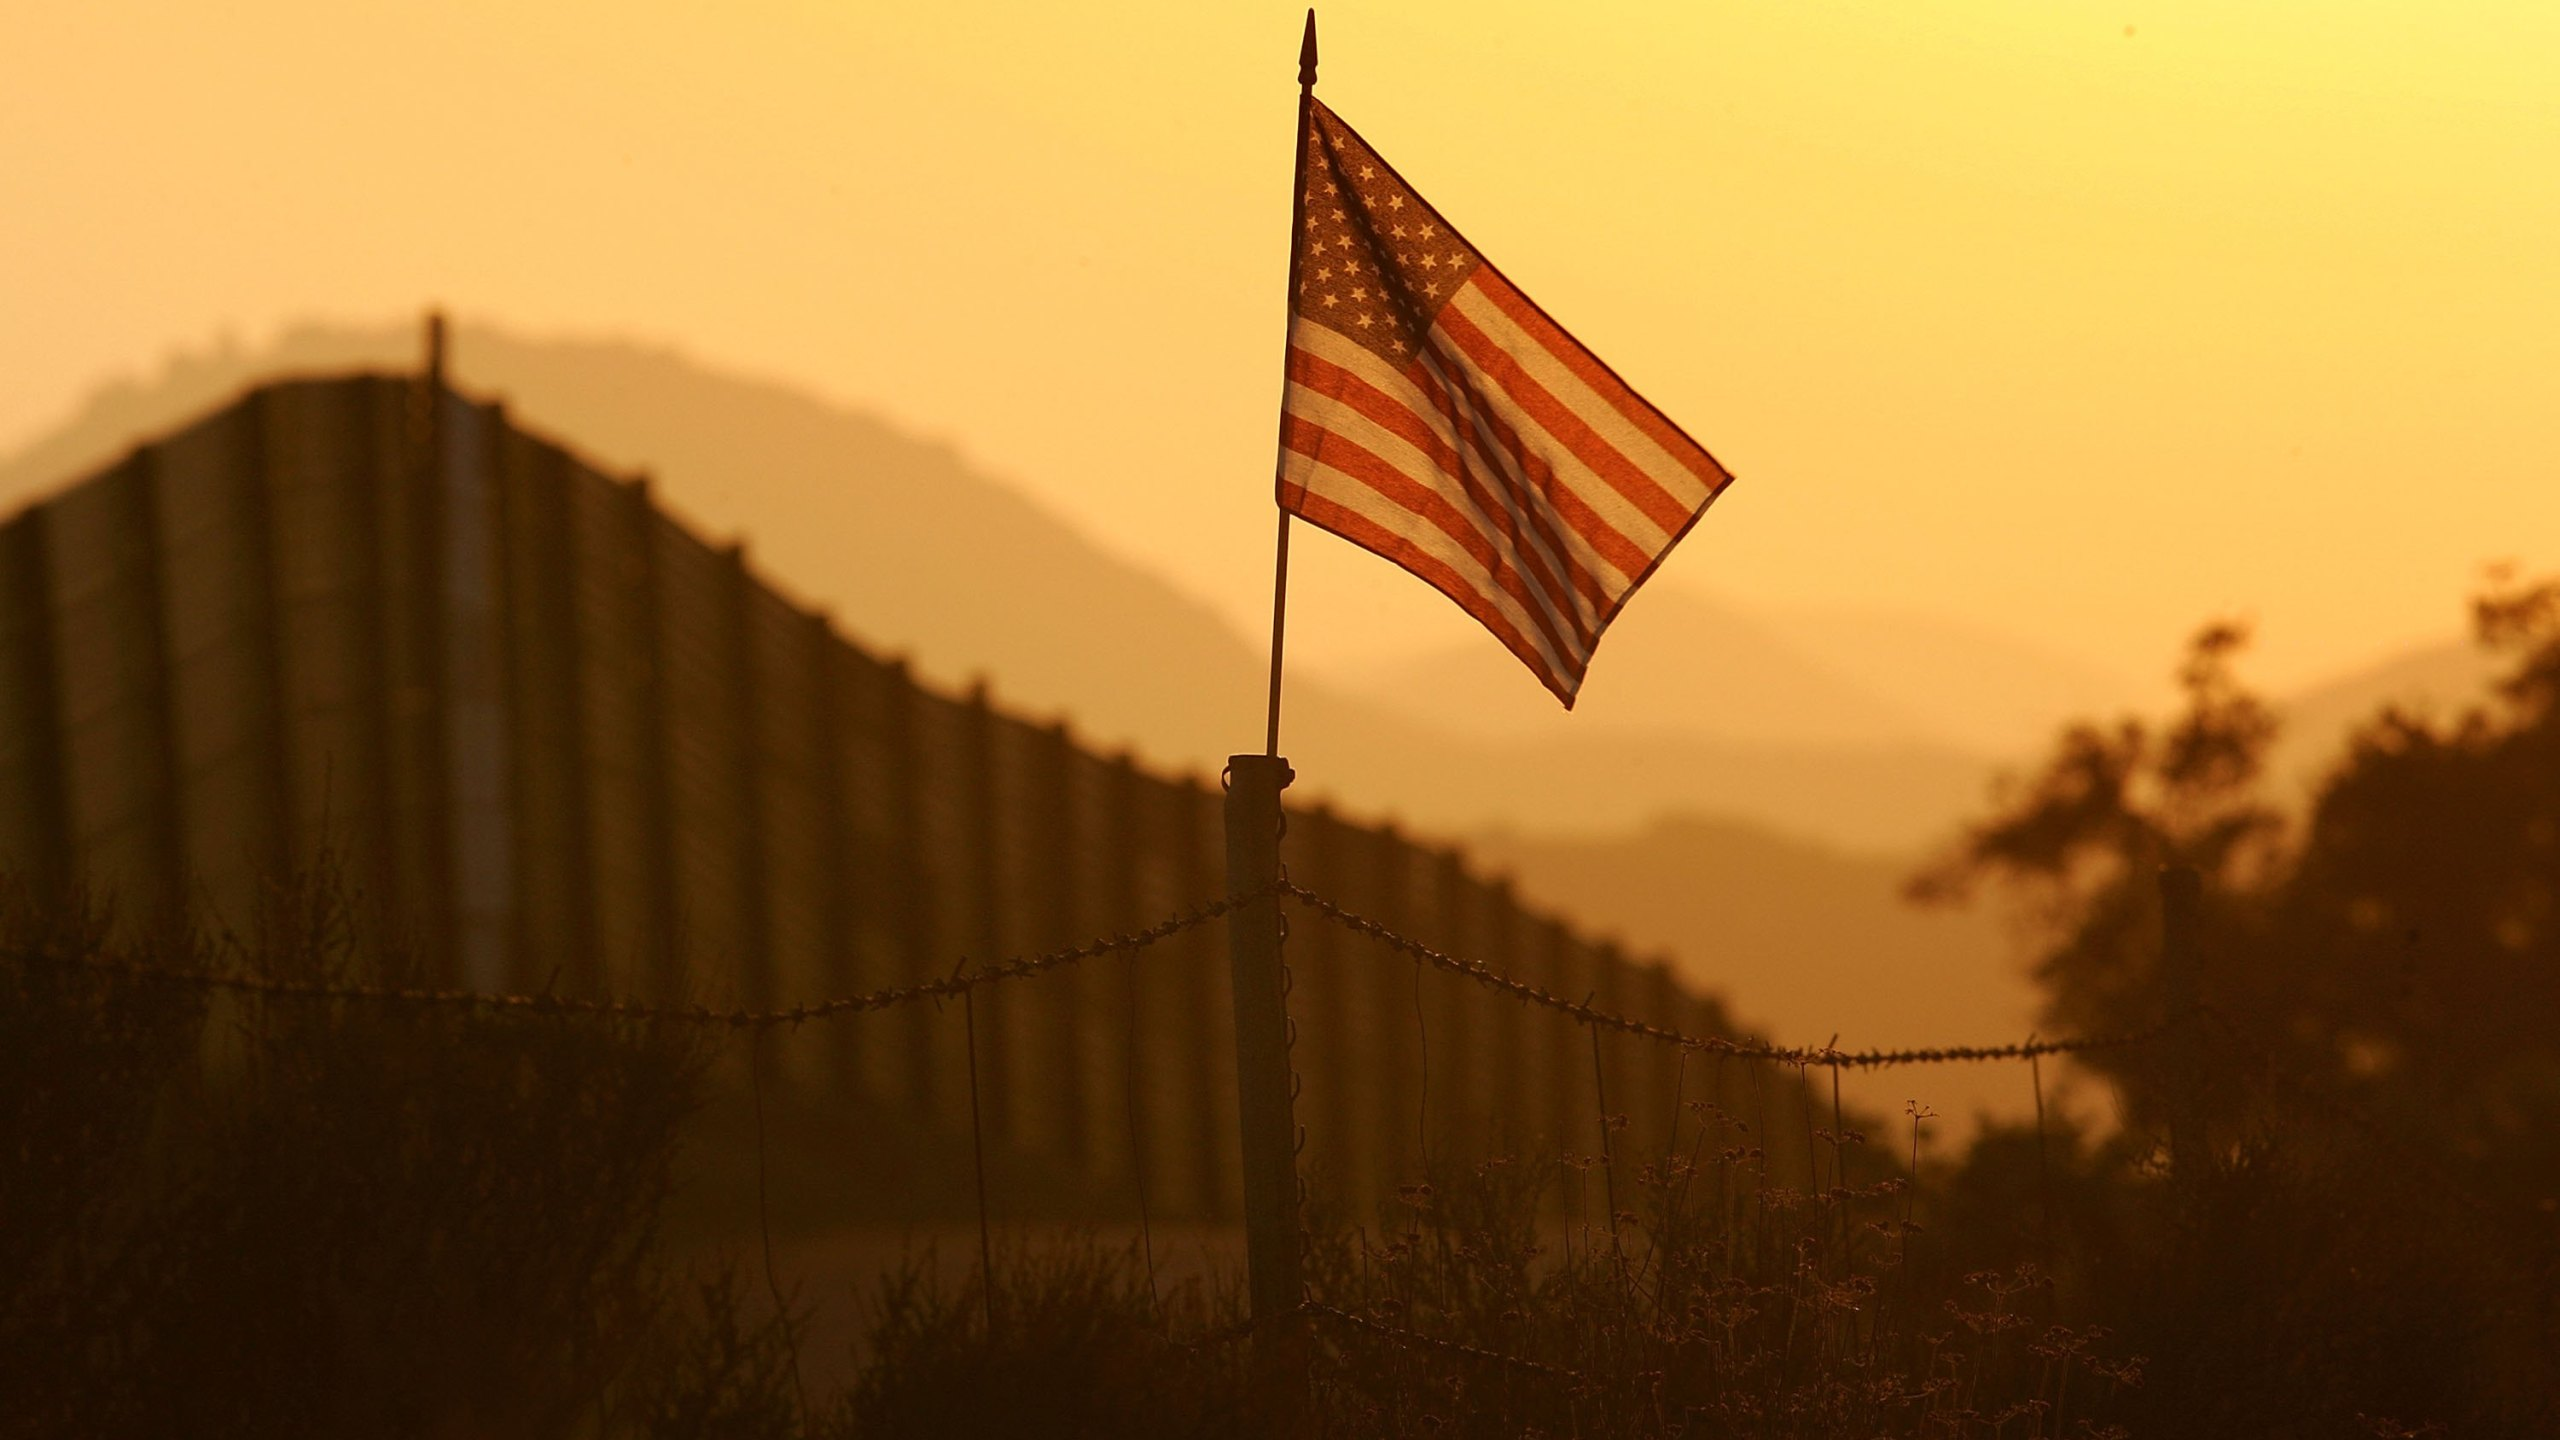 An American flag flies near the US-Mexico border fence in an area where they search for border crossers October 8, 2006 near Campo, California. (Credit: David McNew/Getty Images)